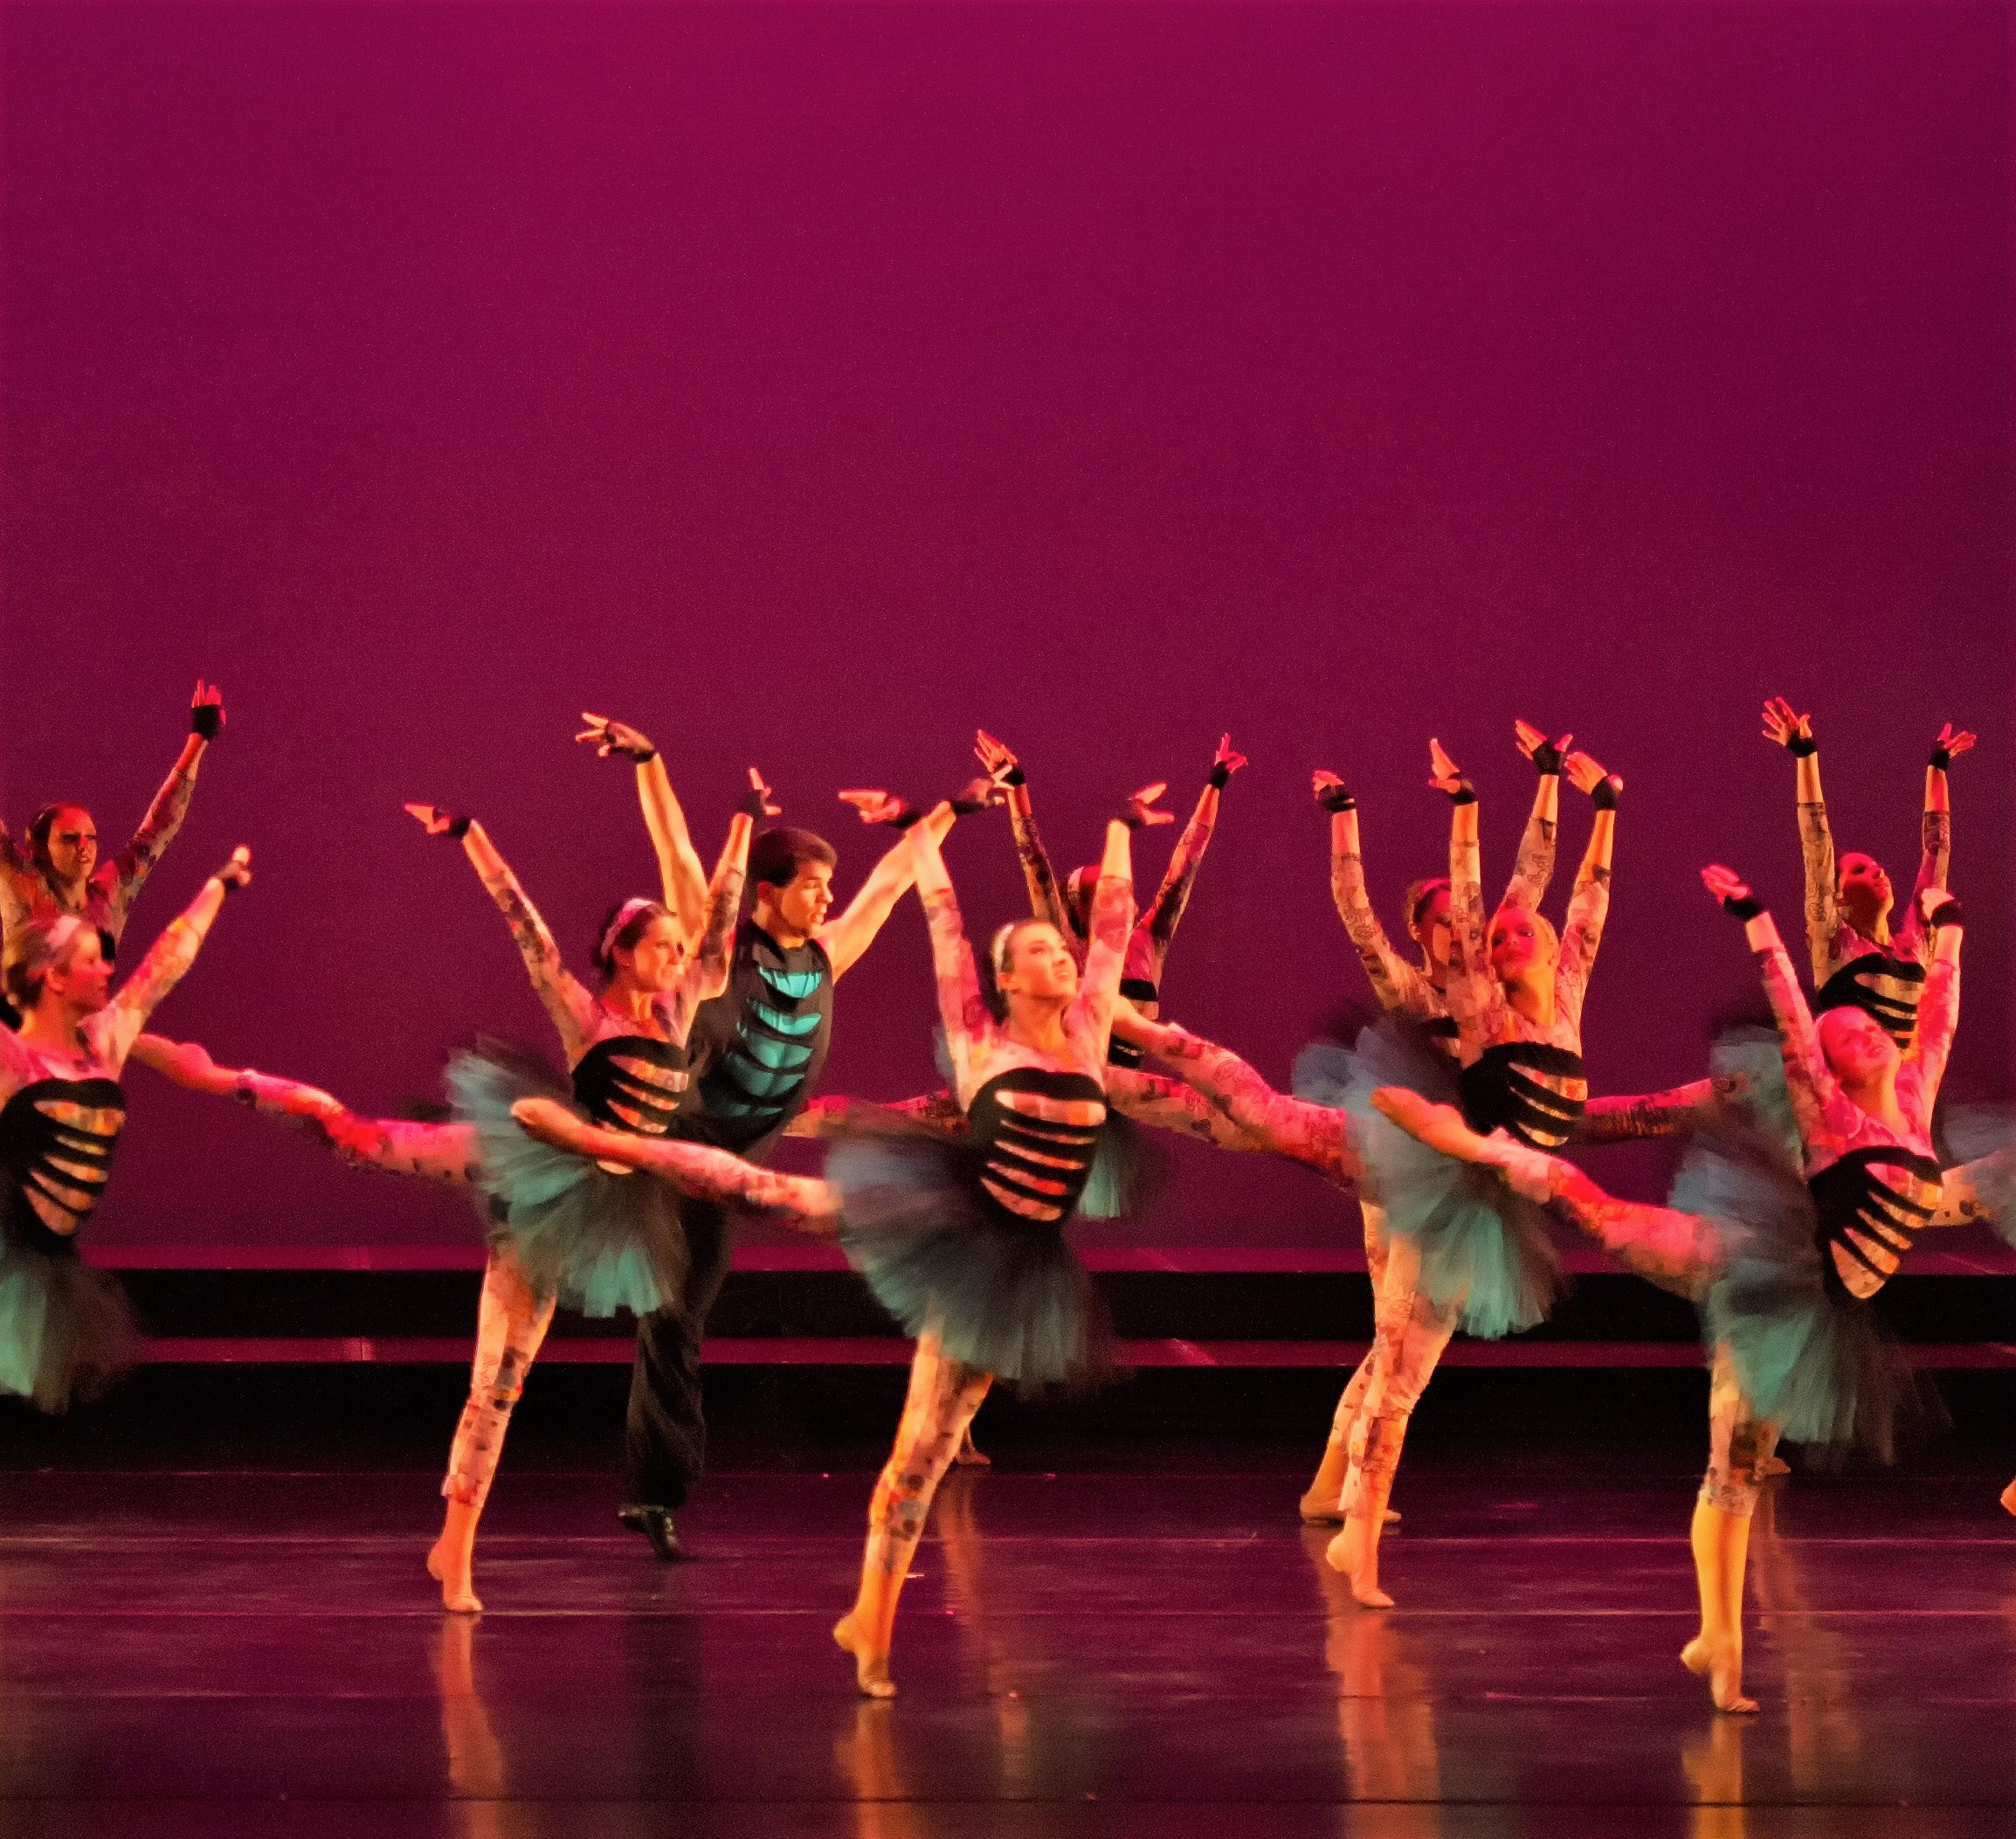 Christine s center stage dance studio home - Click This Amazon Link Above To Support Adc To Continue To Provide The Joy Of Dance For The Community You Shop And Adc Earns Thank You For Your Support